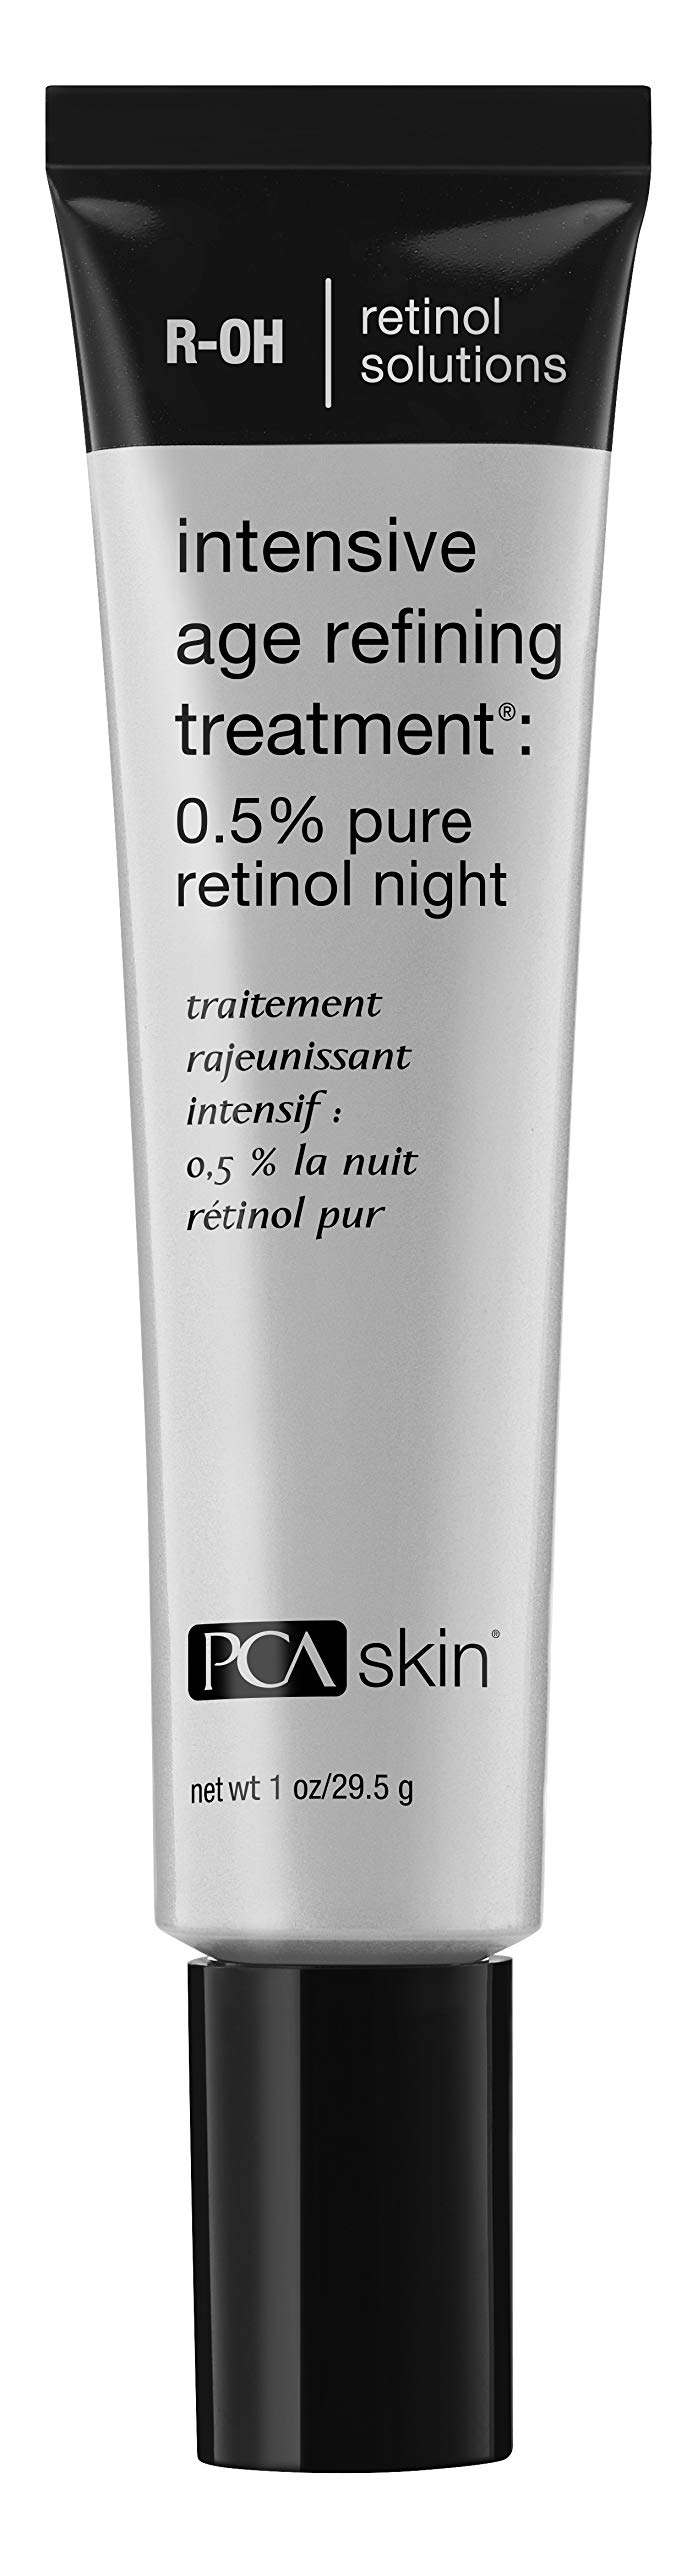 PCA SKIN Intensive Age Refining Treatment - 0.5% Pure Retinol with OmniSome Delivery Technology Fights Fine Lines & Wrinkles for Mature Skin (1 oz)